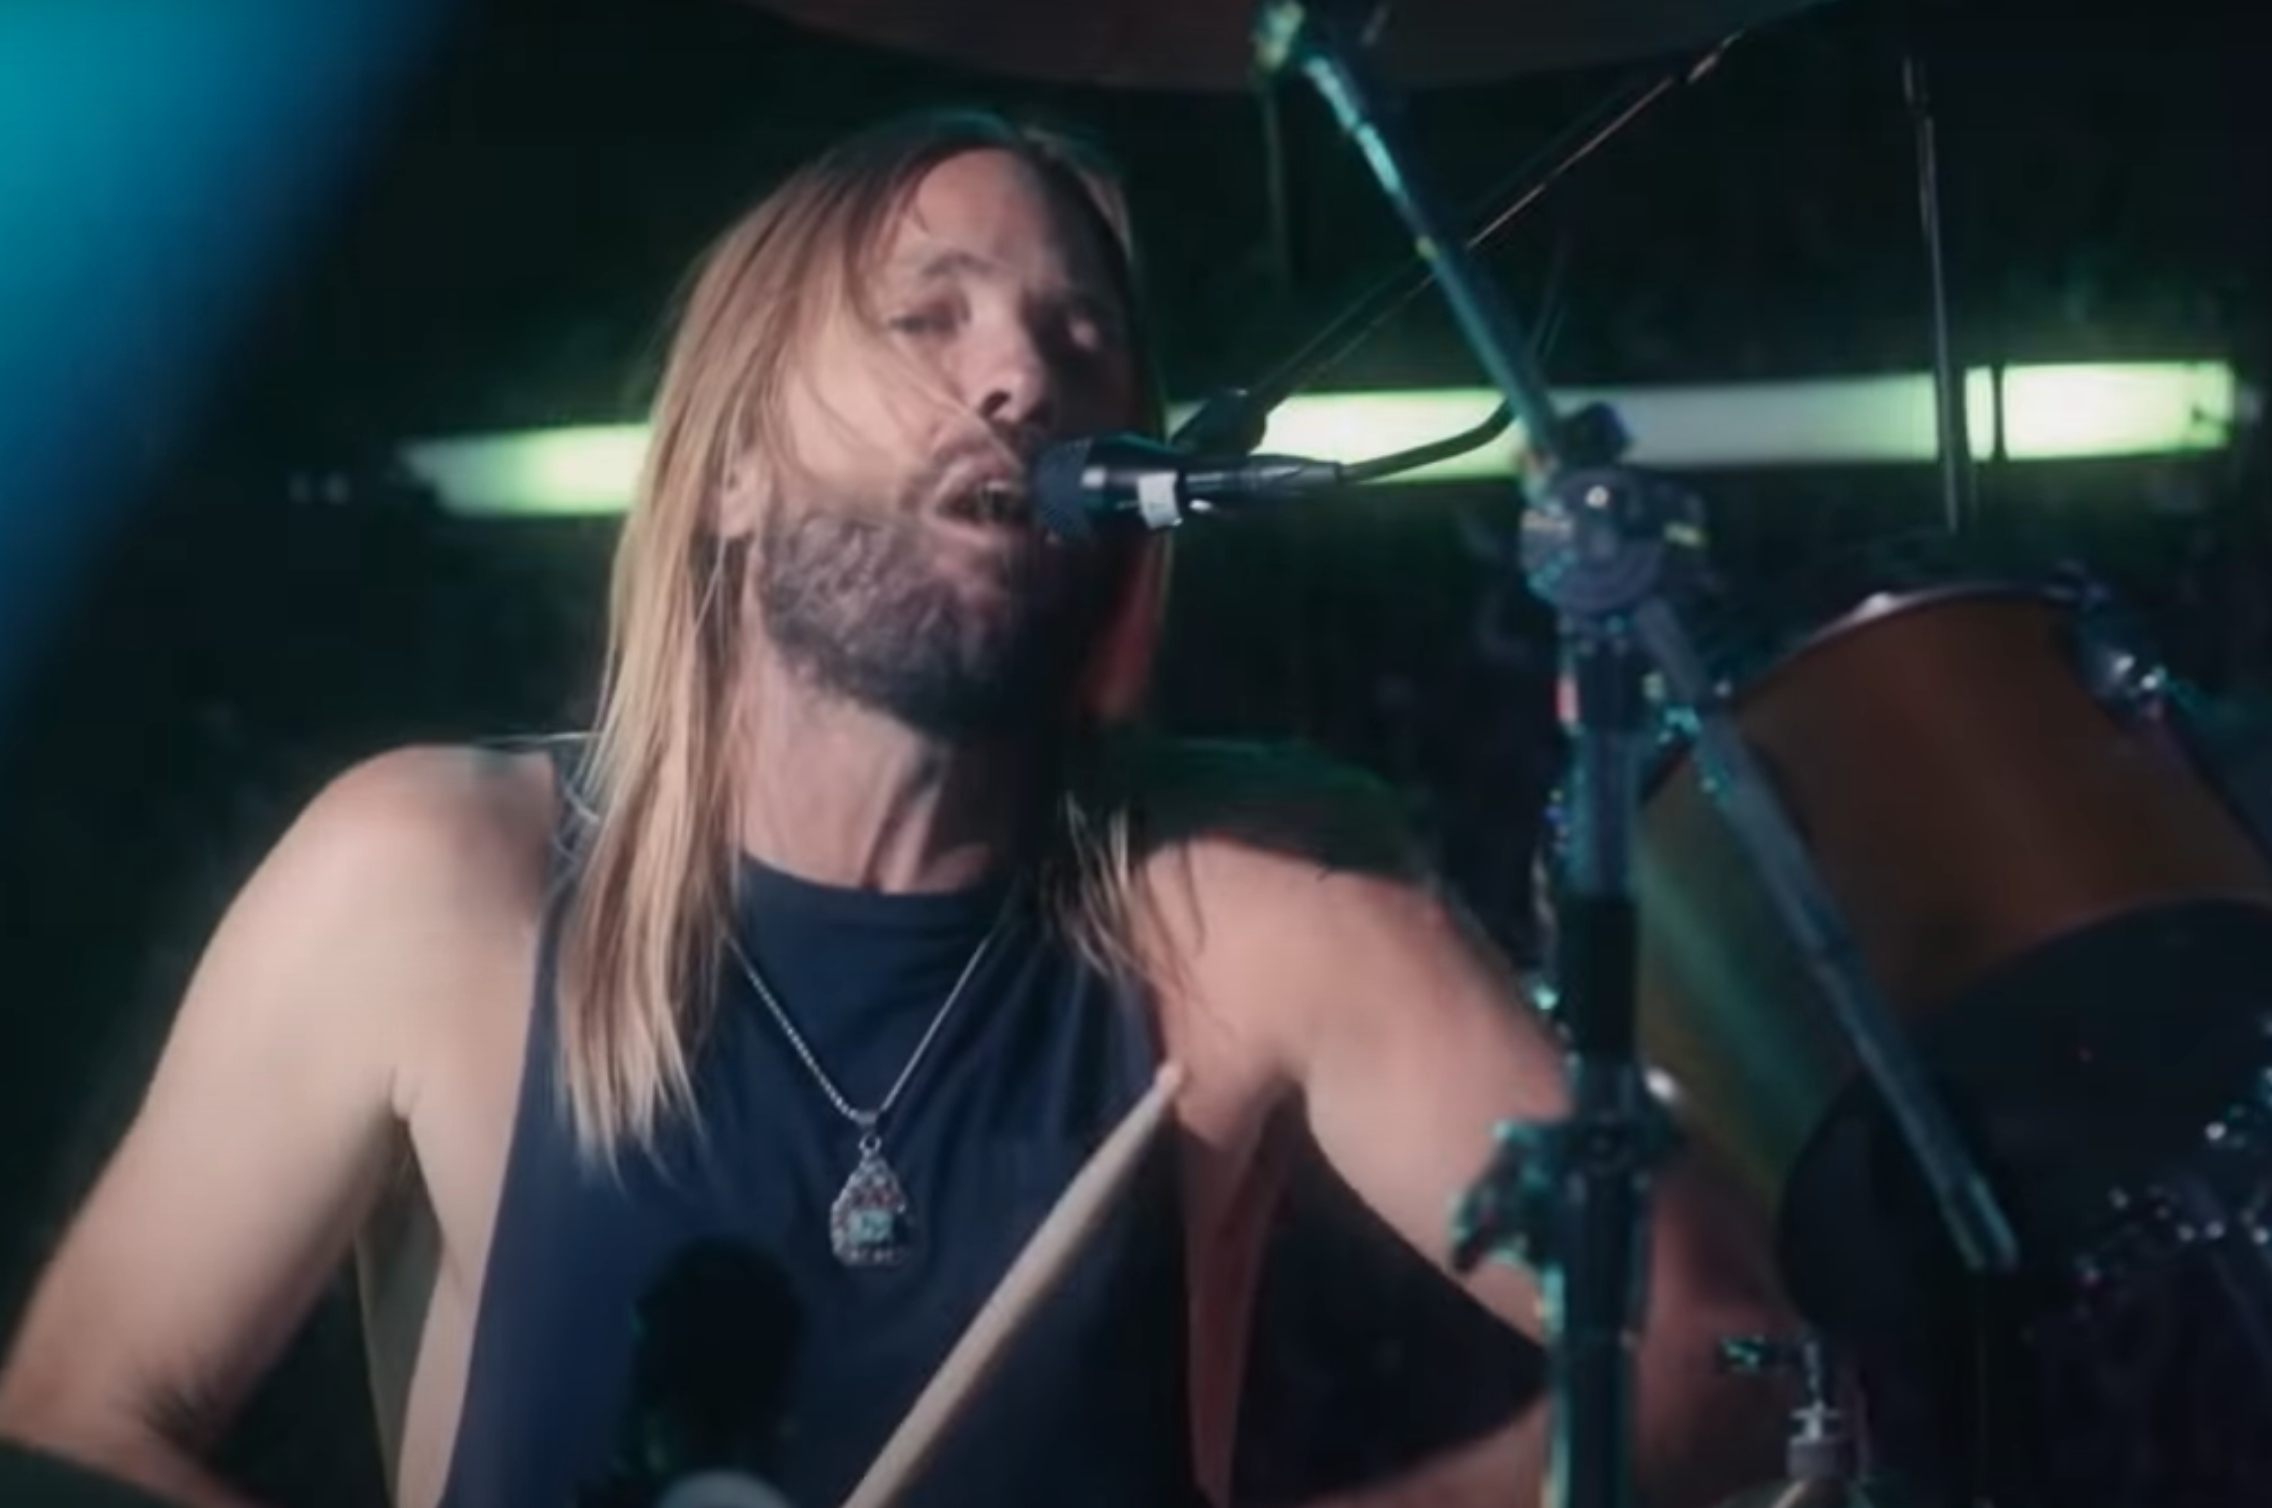 Watch Taylor Hawkins Handle Vocals on Foo Fighters' Cover of 'Shadow Dancing'